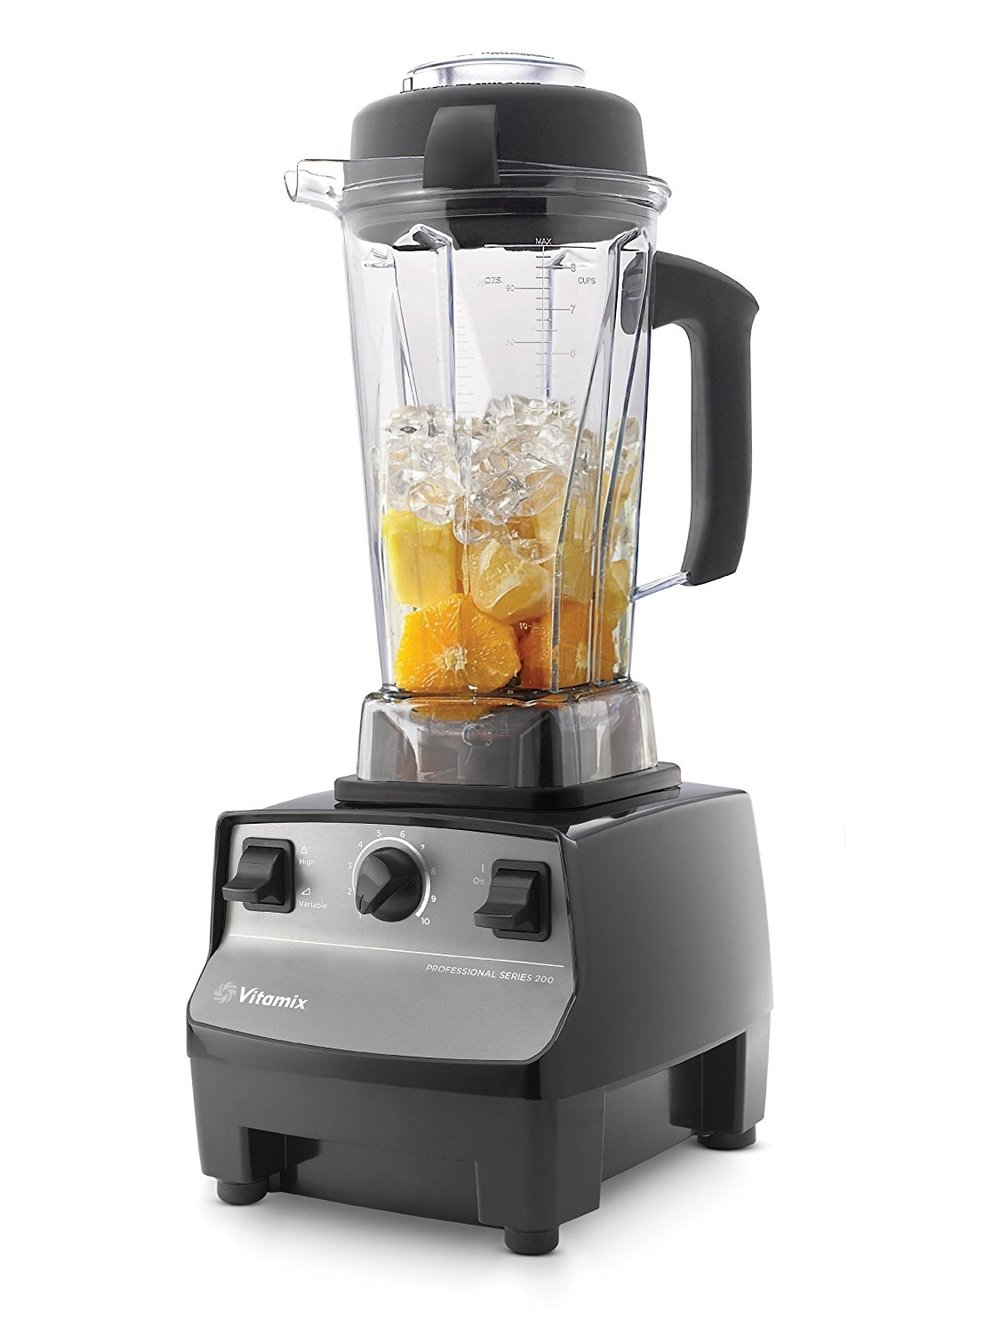 Vitamix side.jpg